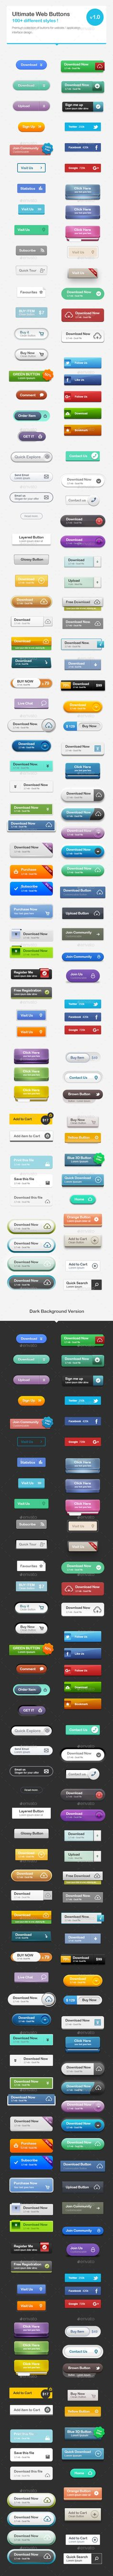 120 Web Buttons Template PSD #ads Download: http://graphicriver.net/item/120-web-buttons/13318875?ref=ksioks